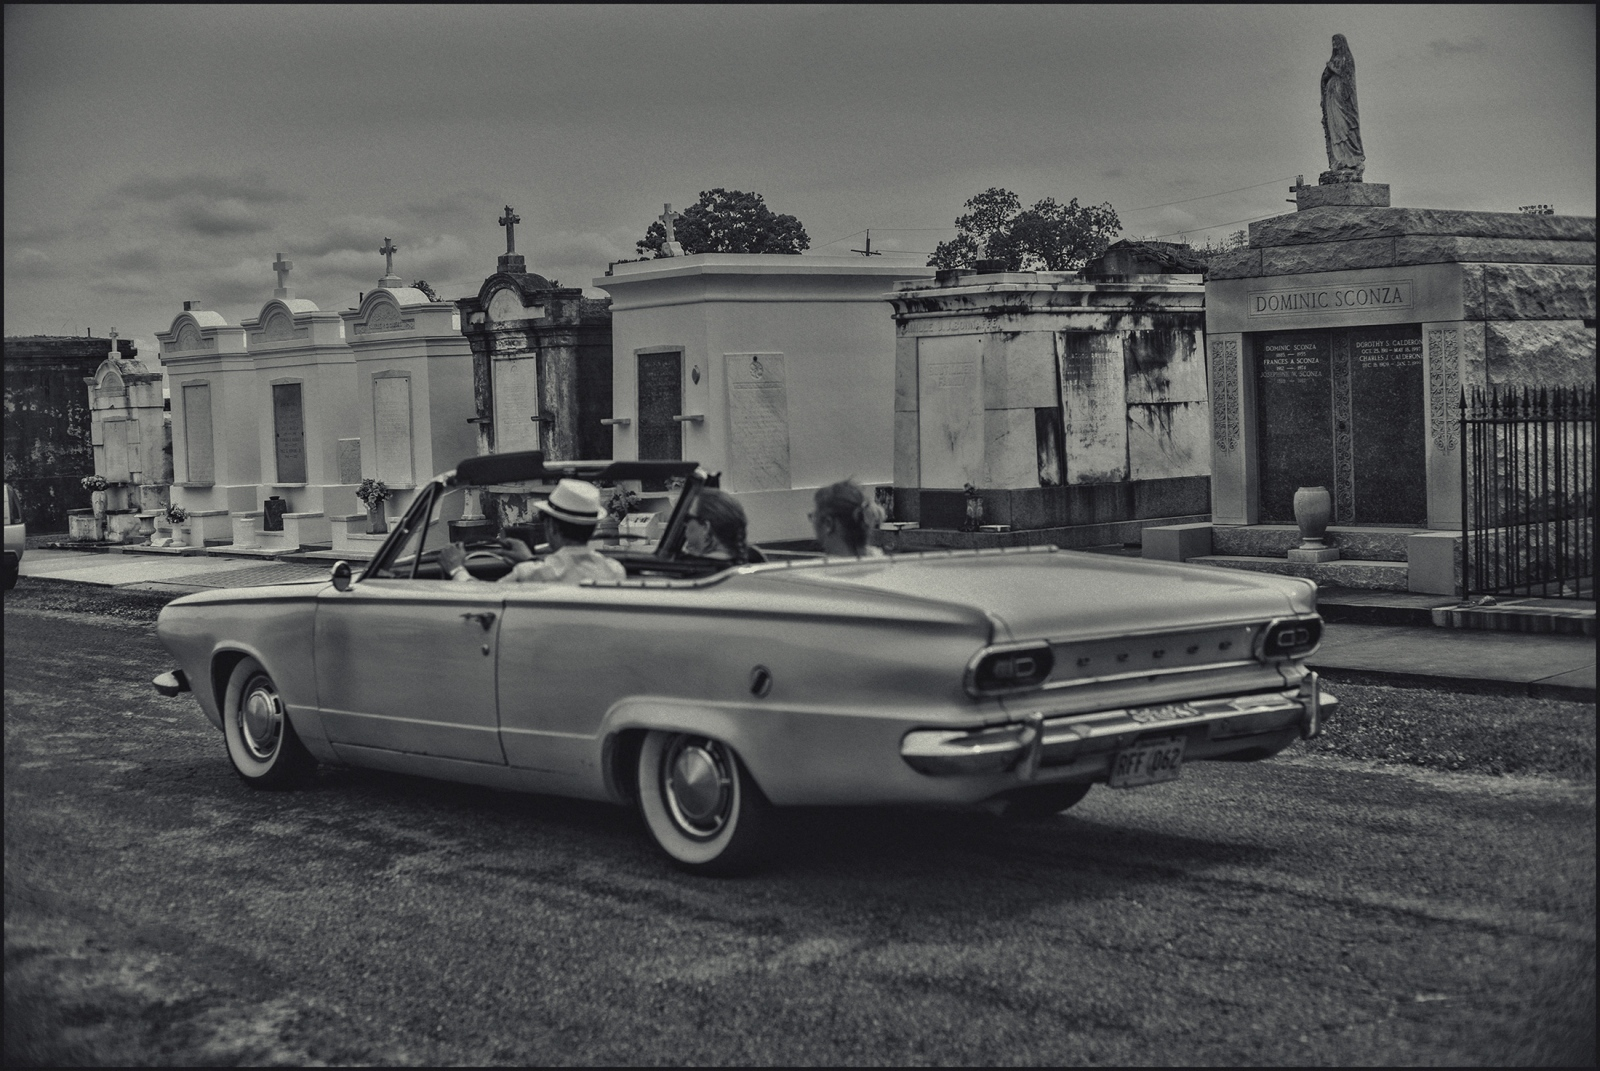 """Hipsters cruising"" St. Louis #1 Cemetery, New Orleans, LA. 2019."